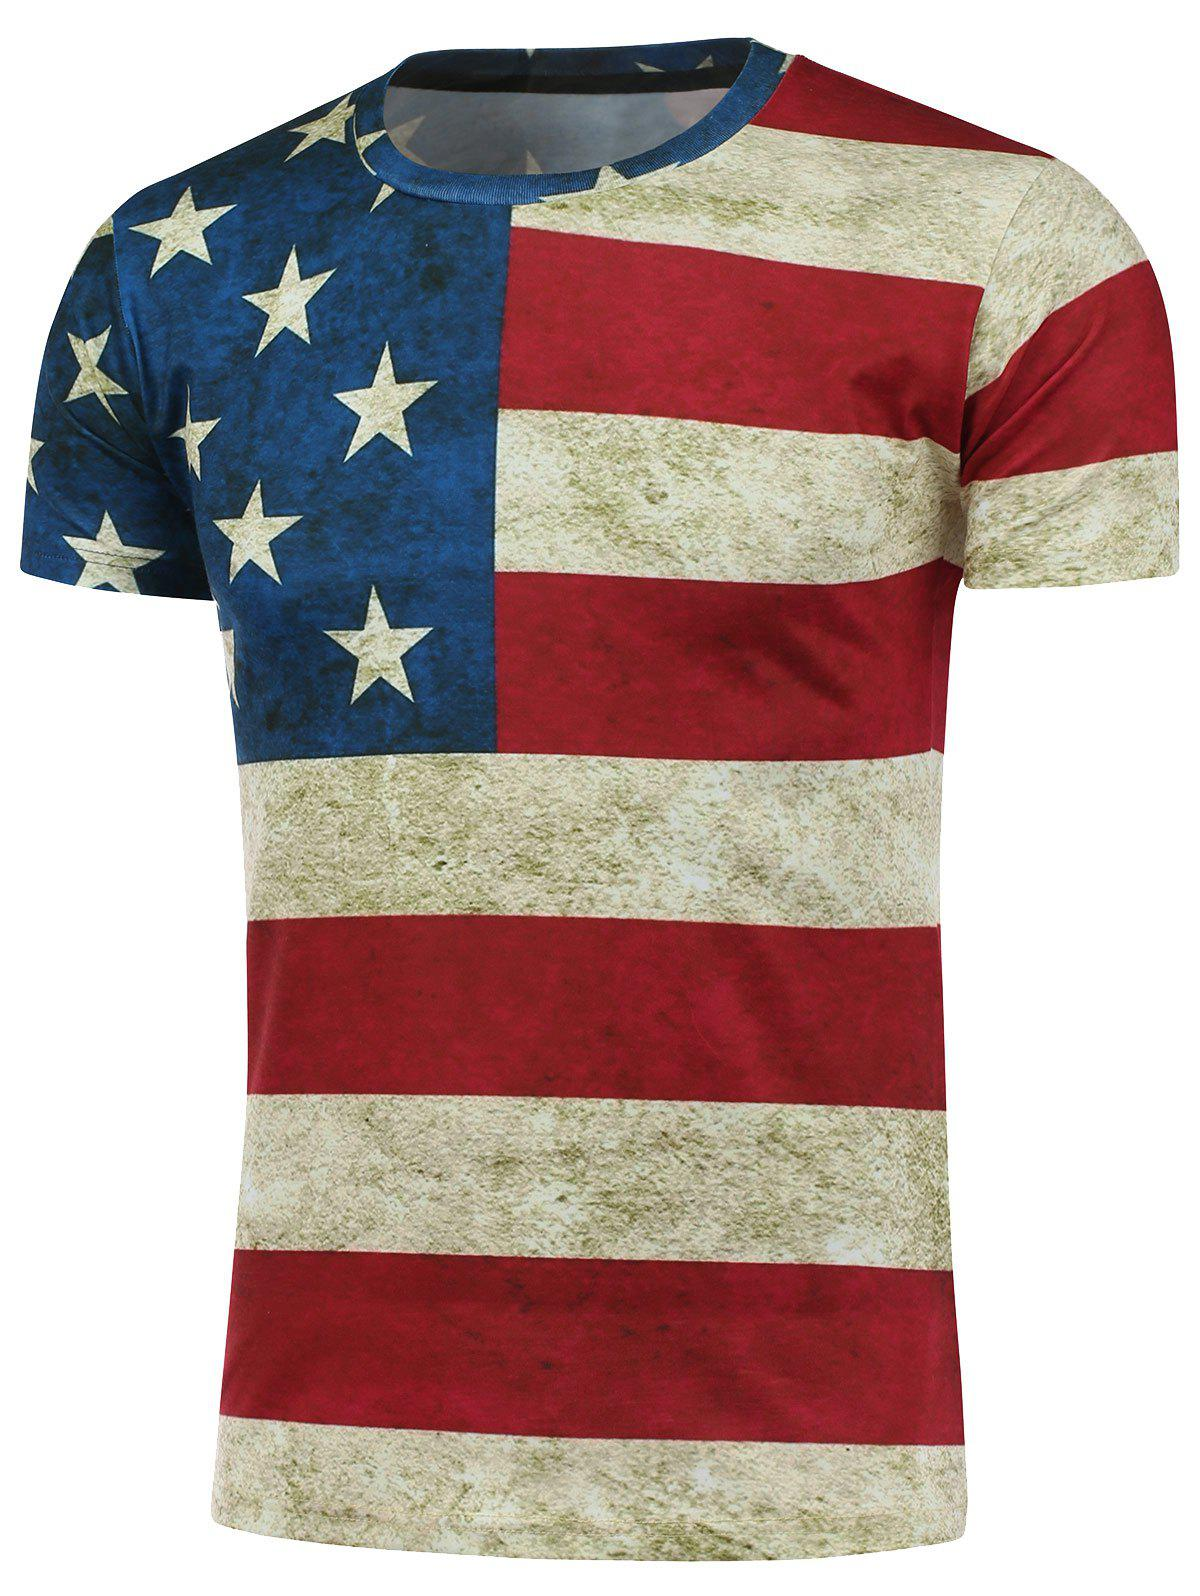 Crew Neck Short Sleeve Distressed American Flag Print T-Shirt - COLORMIX XL